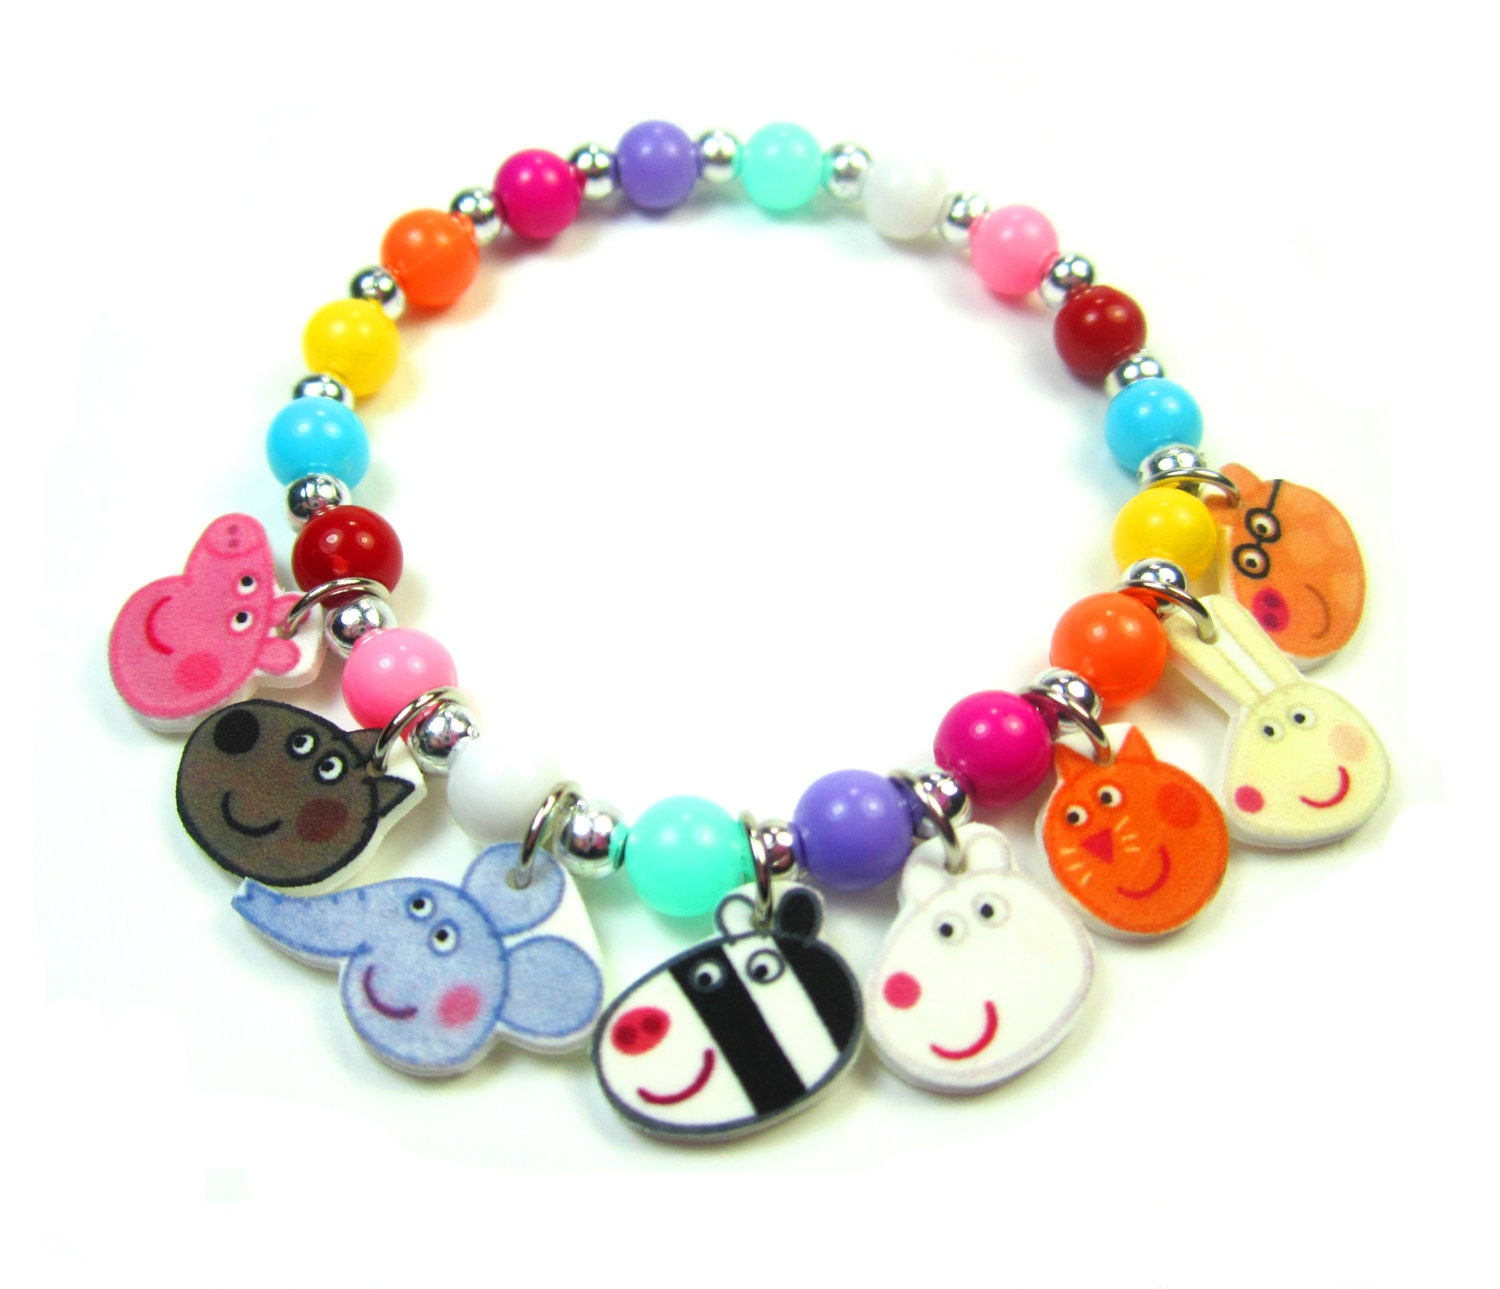 Pig Charm Bracelet: Peppa Pig Charm Bracelet Peppa Pig Jewelry Peppa By